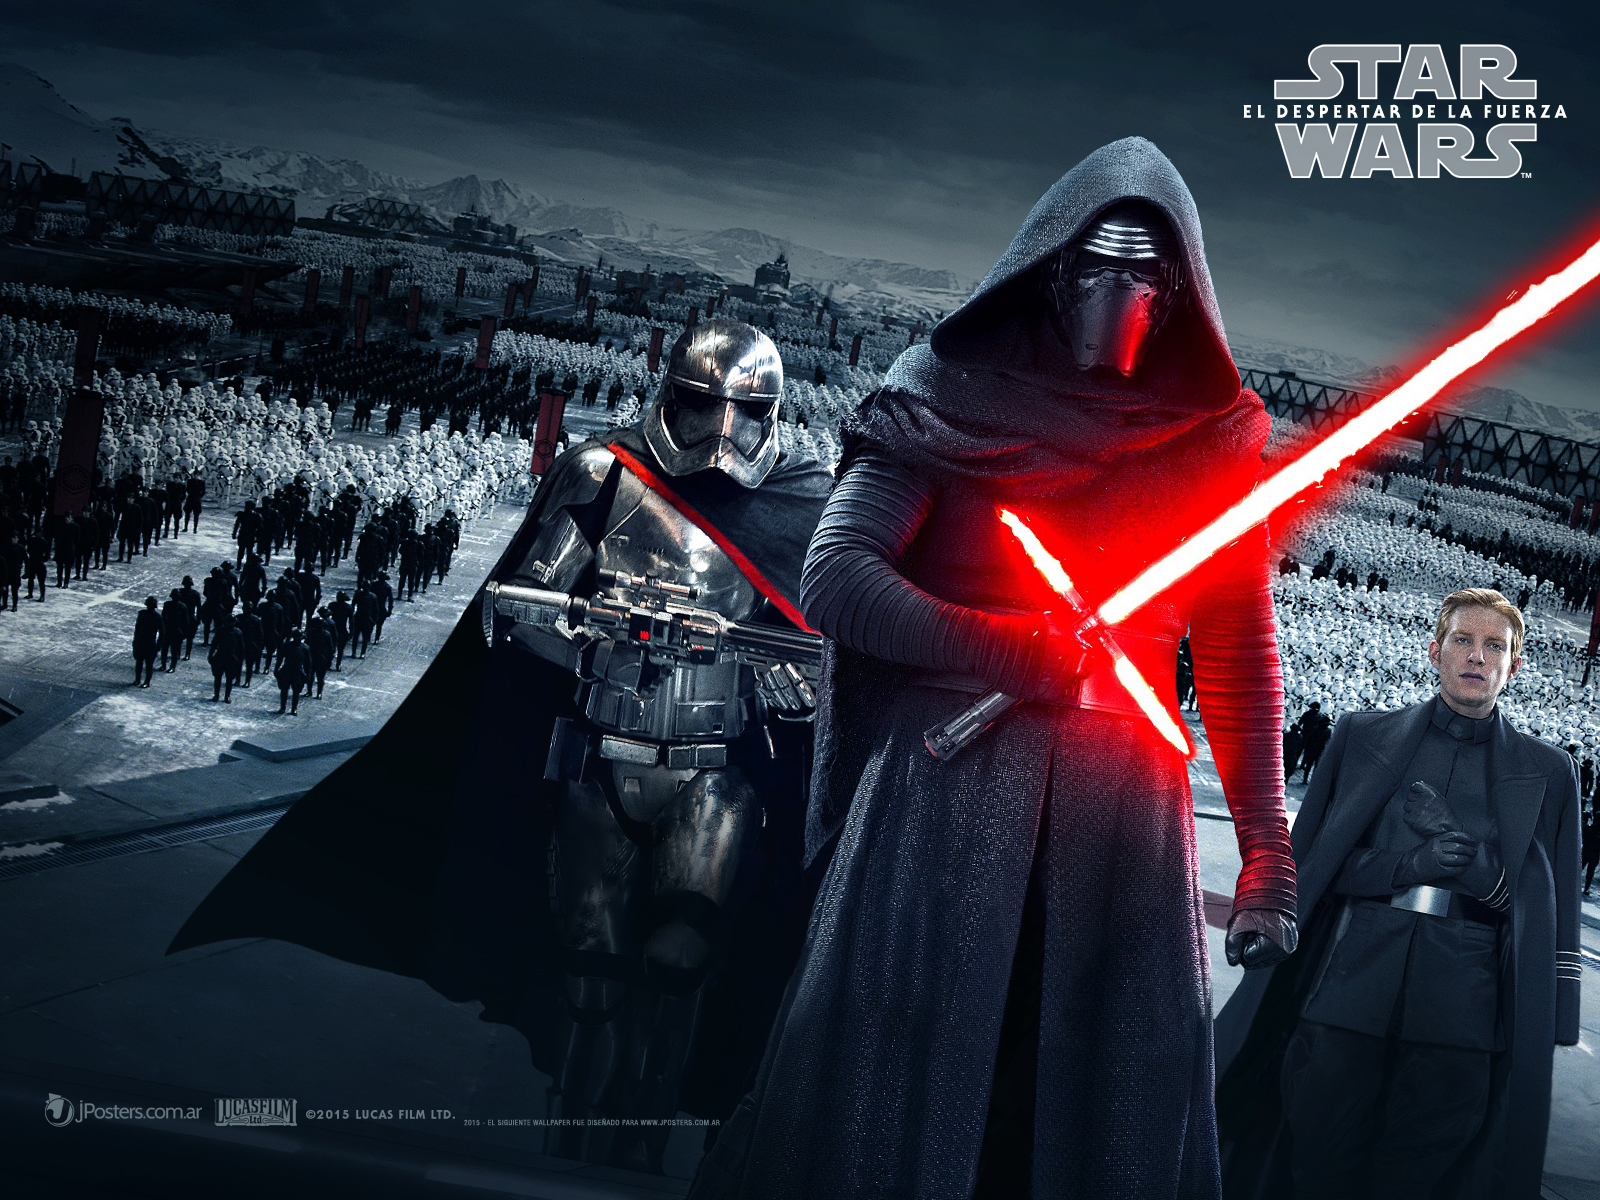 45 Star Wars Episode 7 Hd Wallpaper On Wallpapersafari